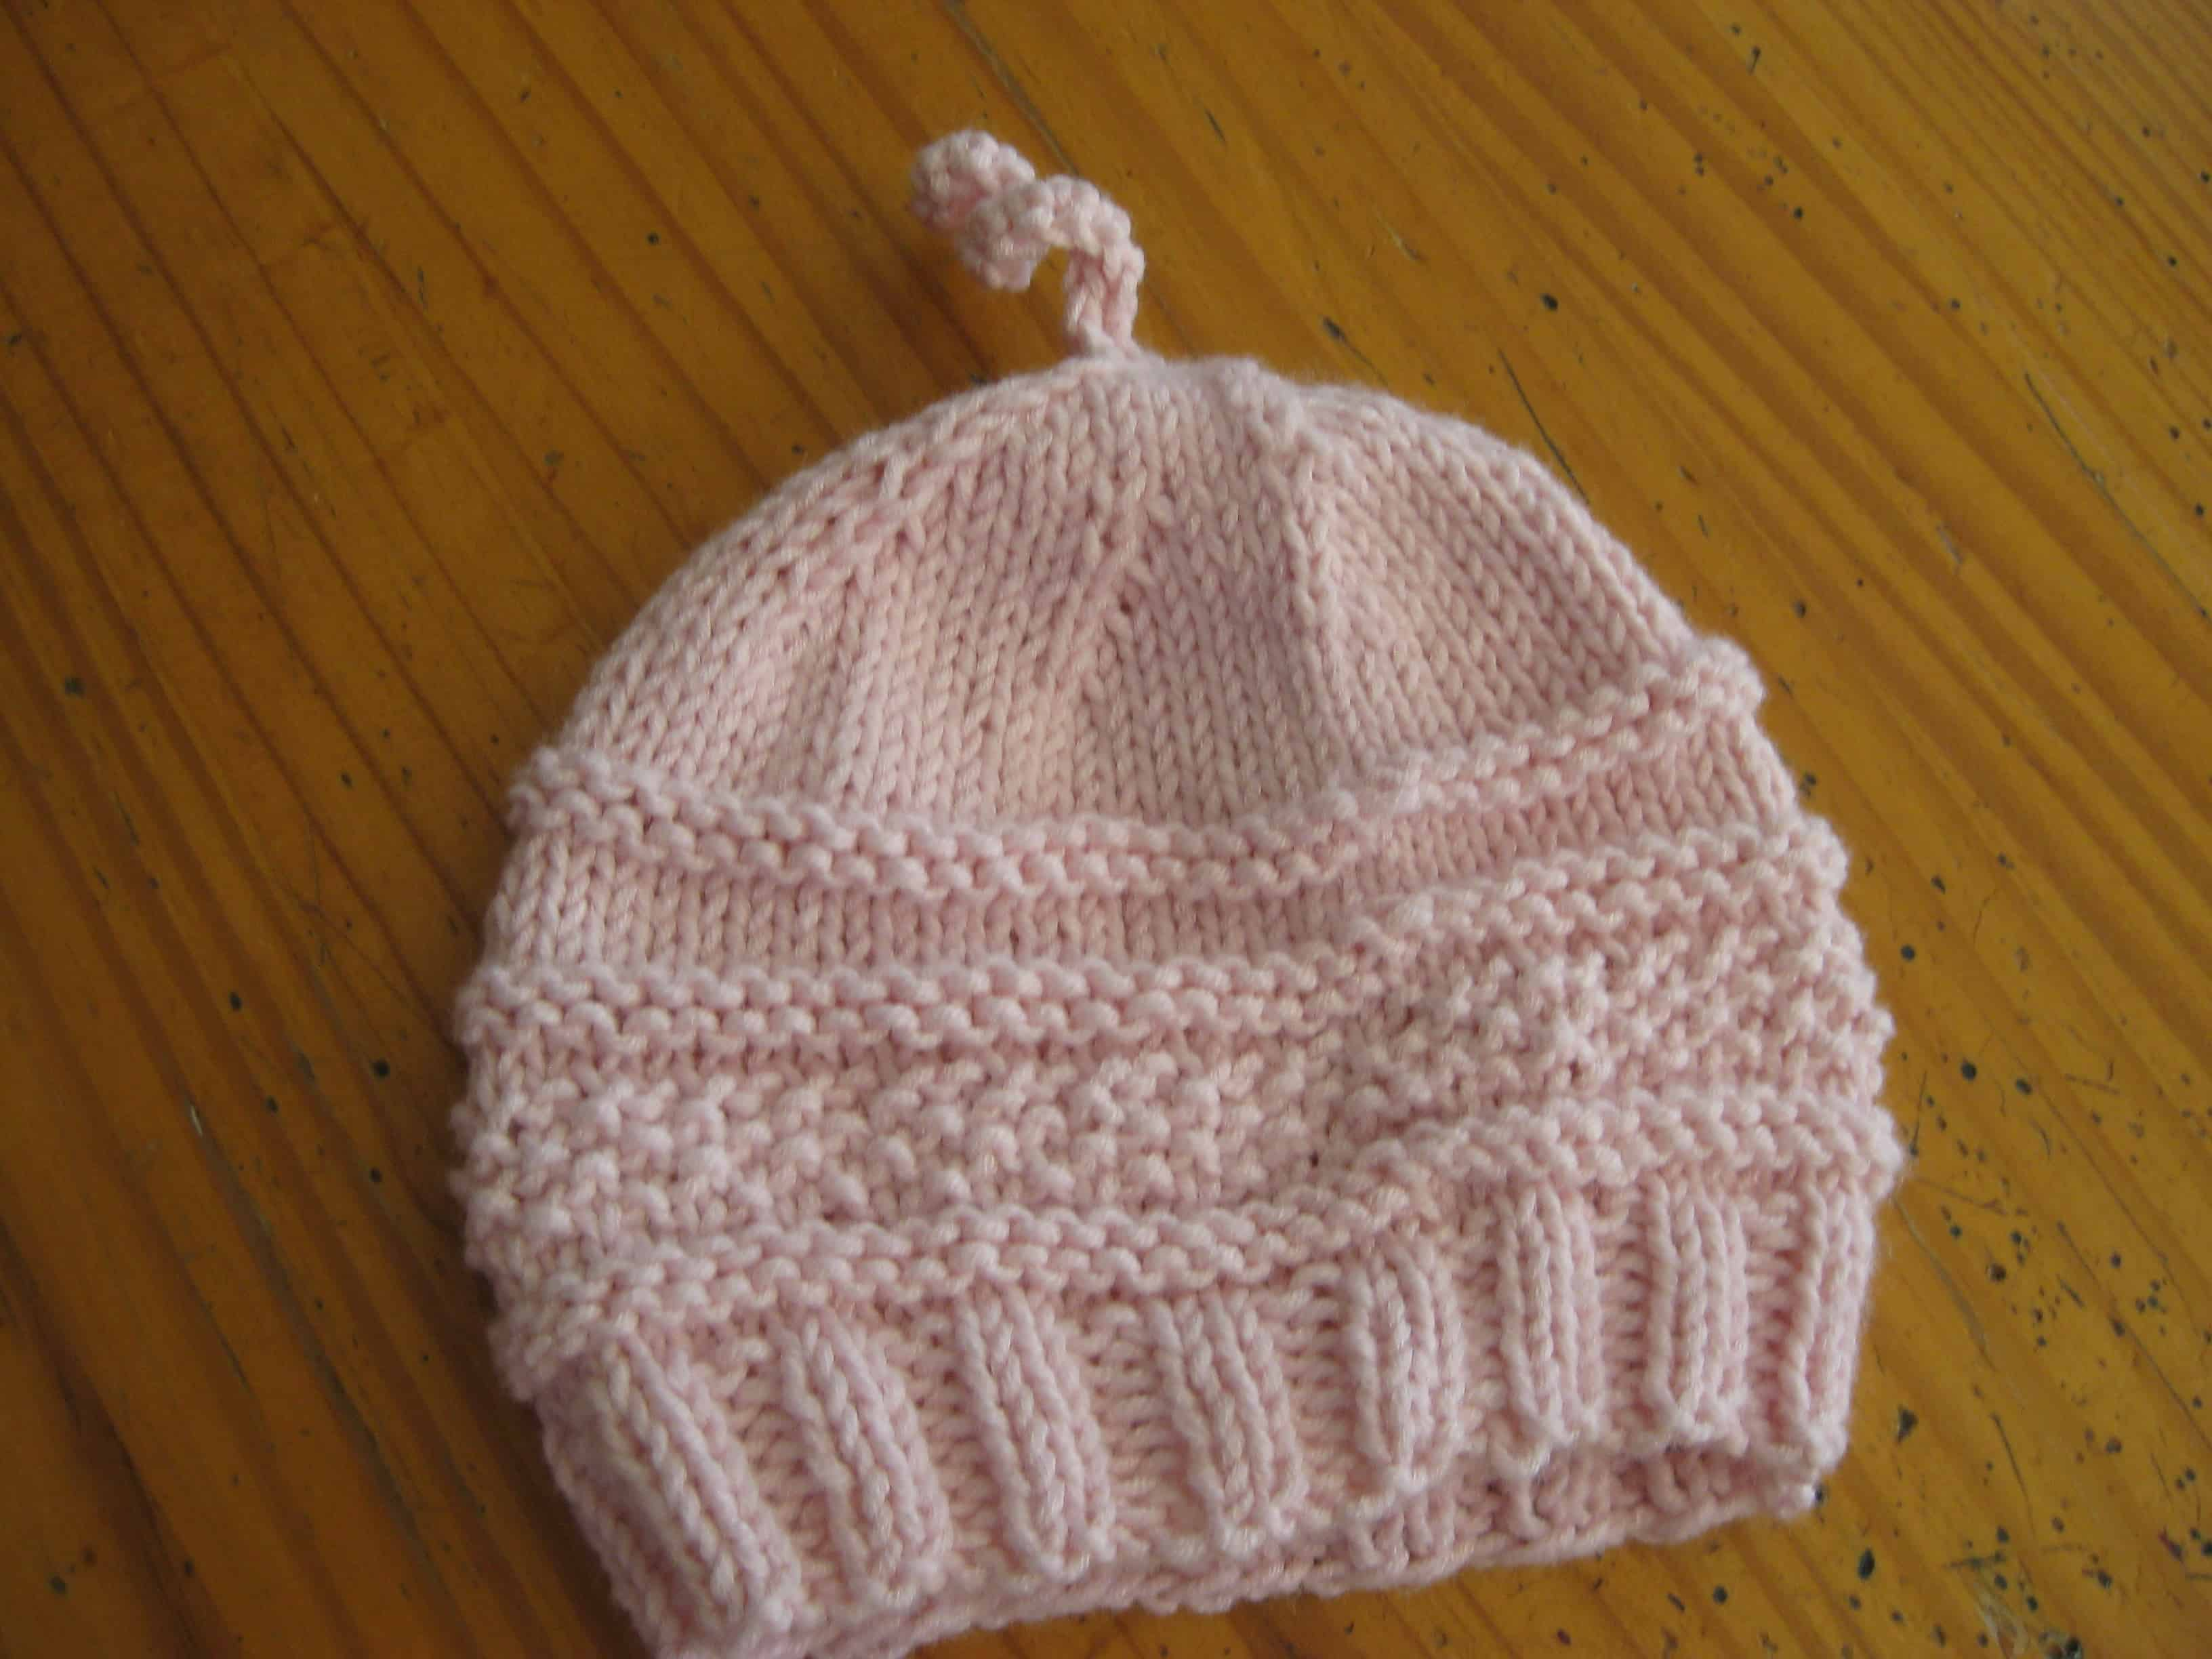 Textured hat with a top curl